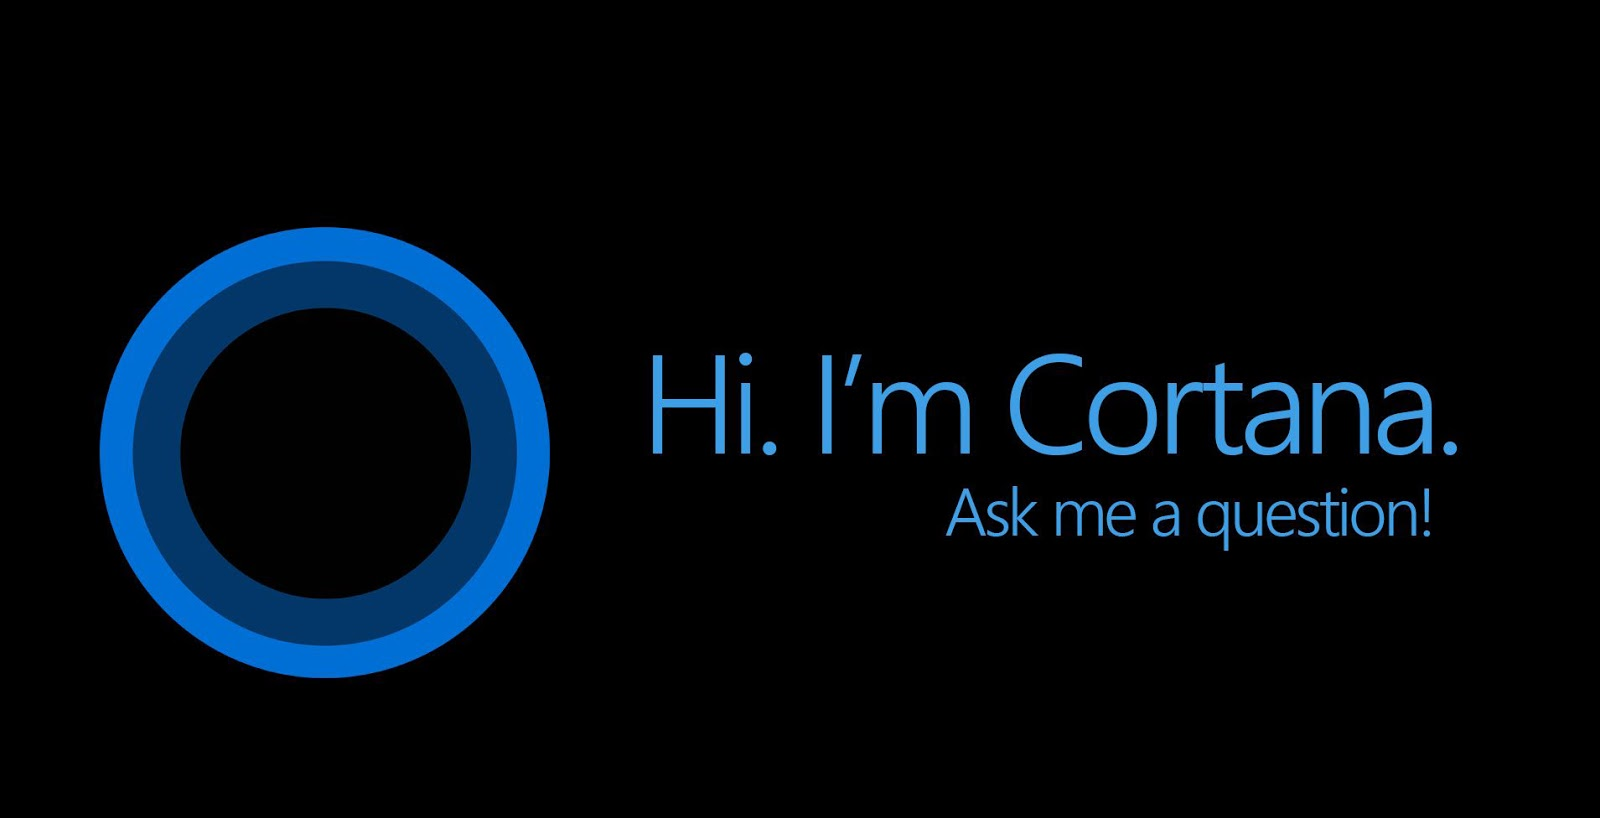 Cortana 1.9.0.1147-enus-release Apk Beta Version Latest